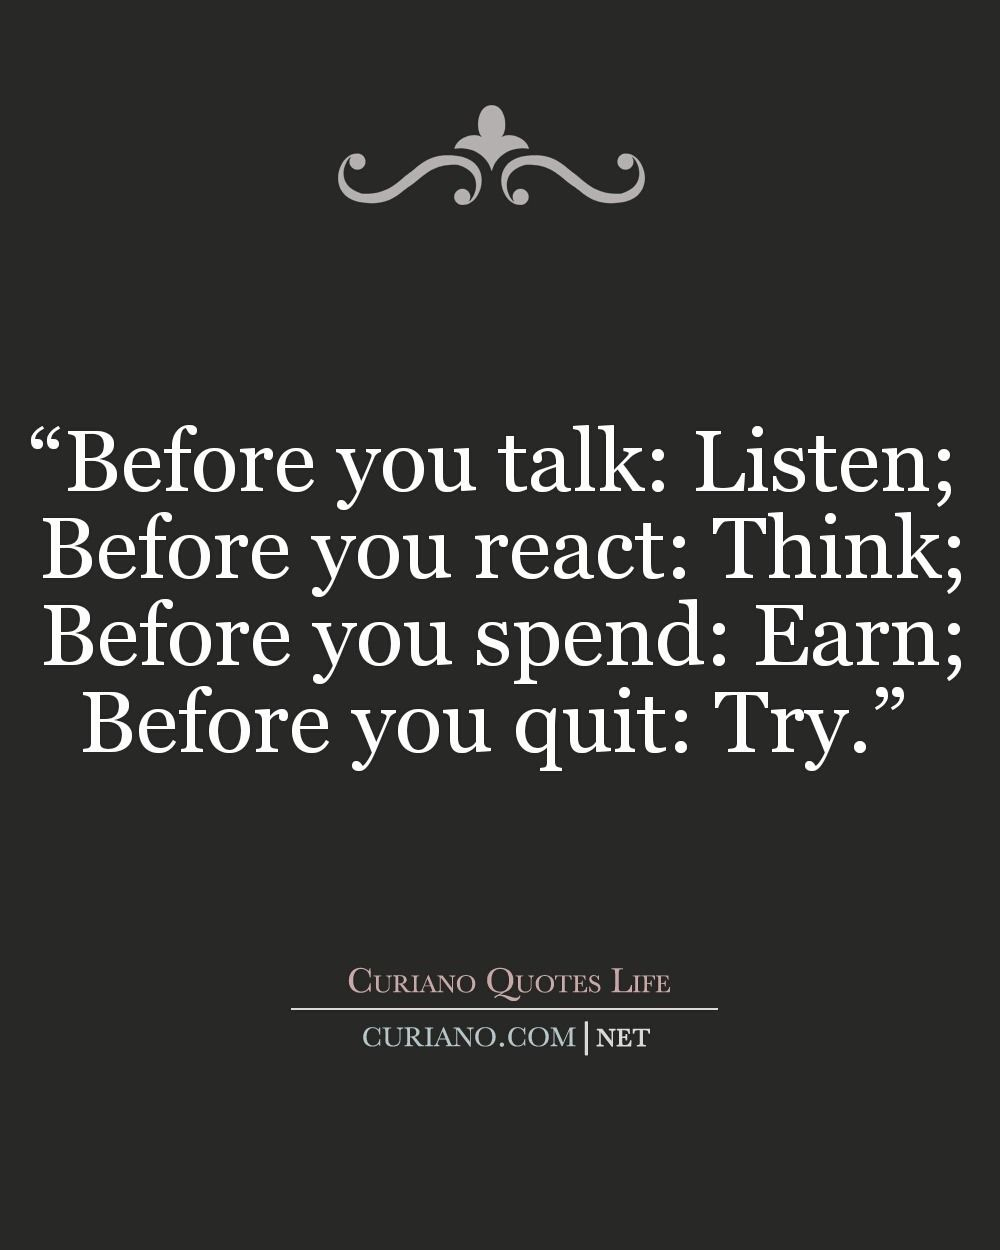 Quotes About Life Lessons And Moving On This Blog Curiano Quotes Life Shows Quotes Best Life Quote